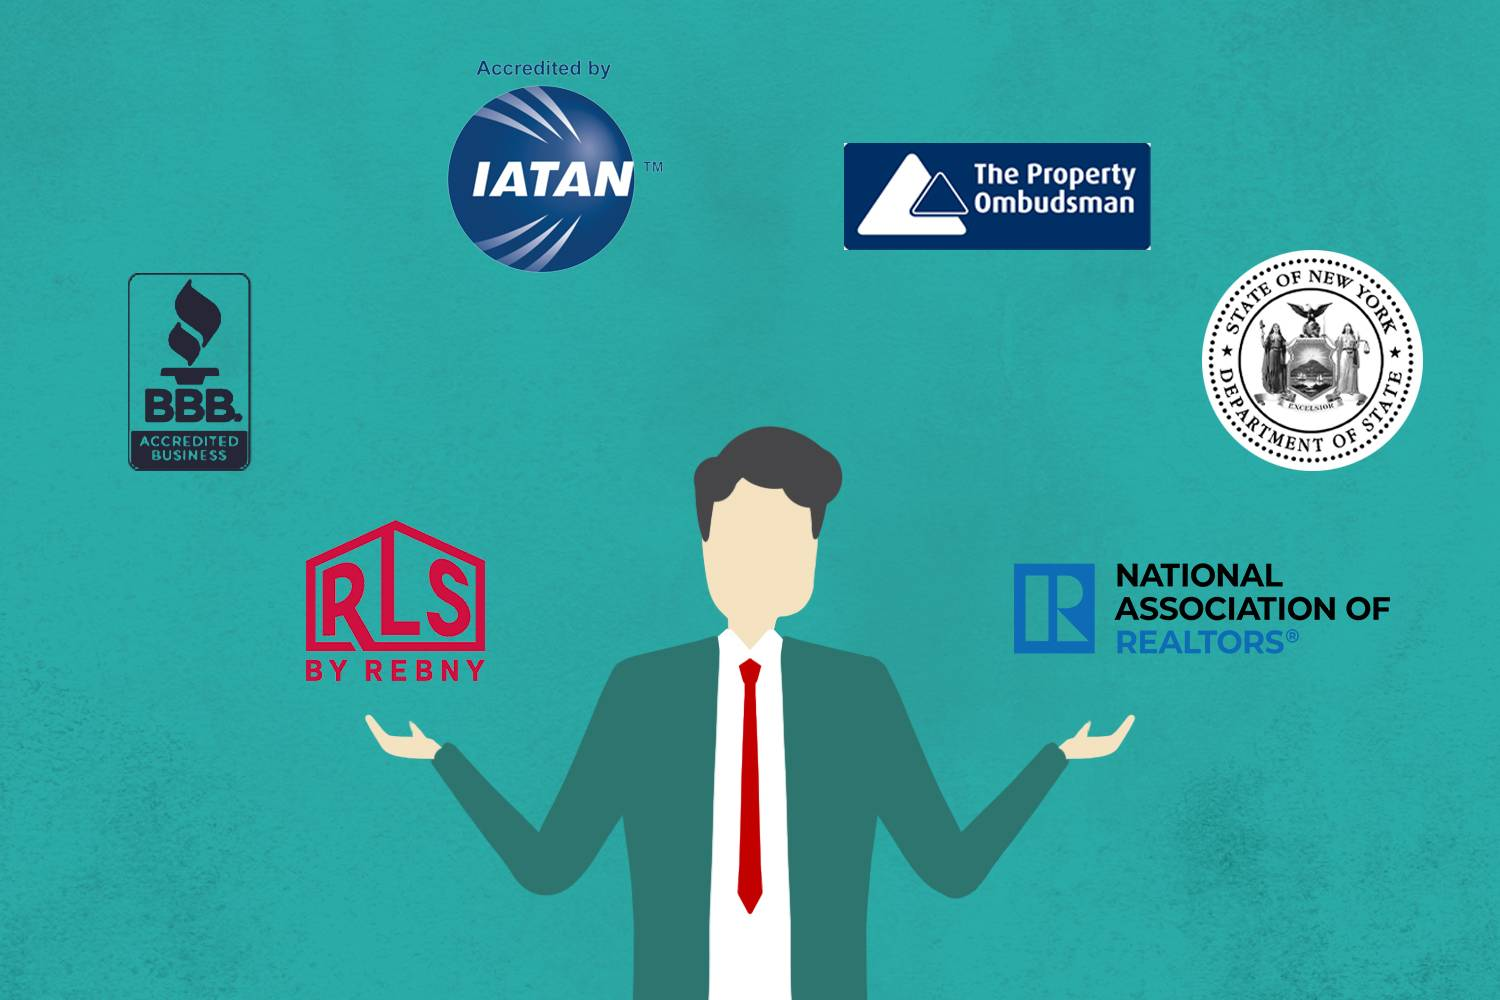 Infographic of a person with suit and tie surrounded by icons of the Better Business Bureau, IATAN, REBNY, National Association of Realtors, NY State Department of State and The Property Ombudsman